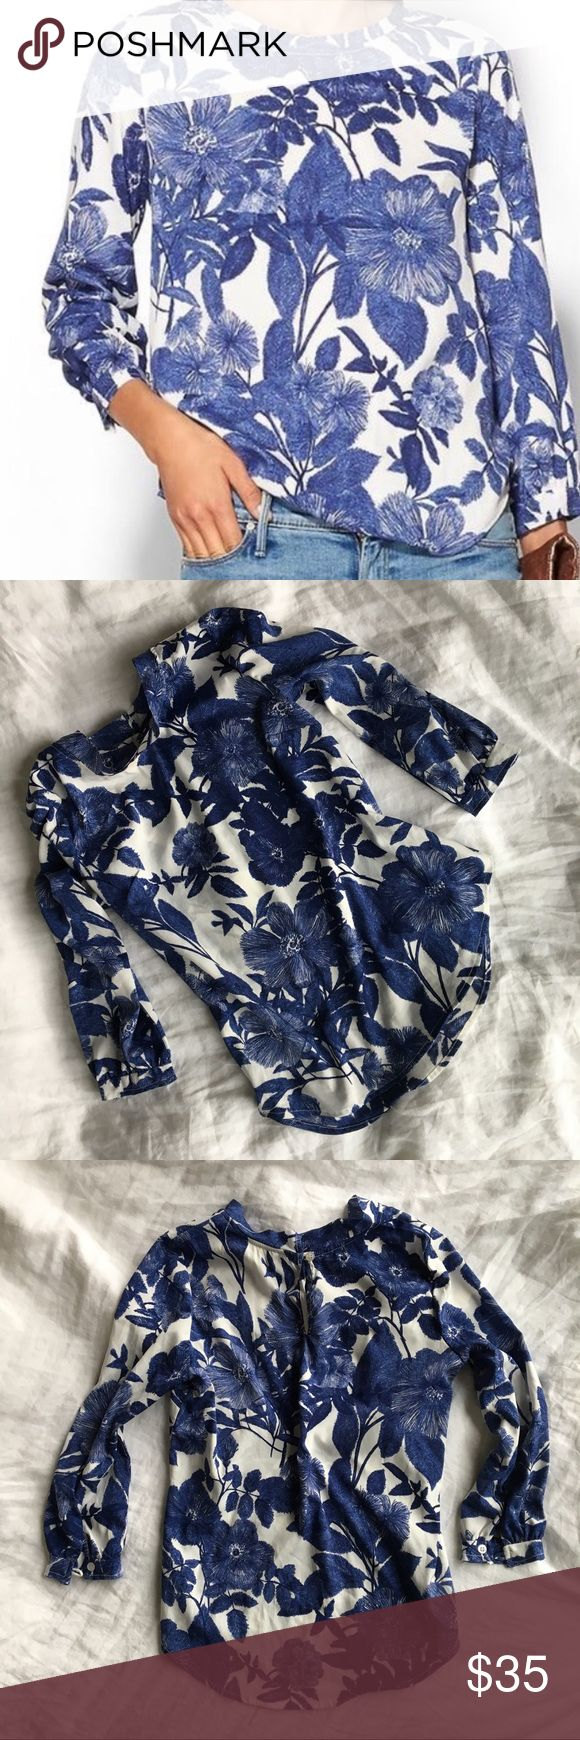 [ANTHROPOLOGIE] blue white floral Blouse PORRIDGE Porridge brand blouse from ANTHRO - 3/4 sleeve- button back closure- shirt tail hem- popover Blouse- fun funky vintage inspired print, great with jeans or paired up with a pencil skirt for work- perfect condition- sz XS Anthropologie Tops Blouses